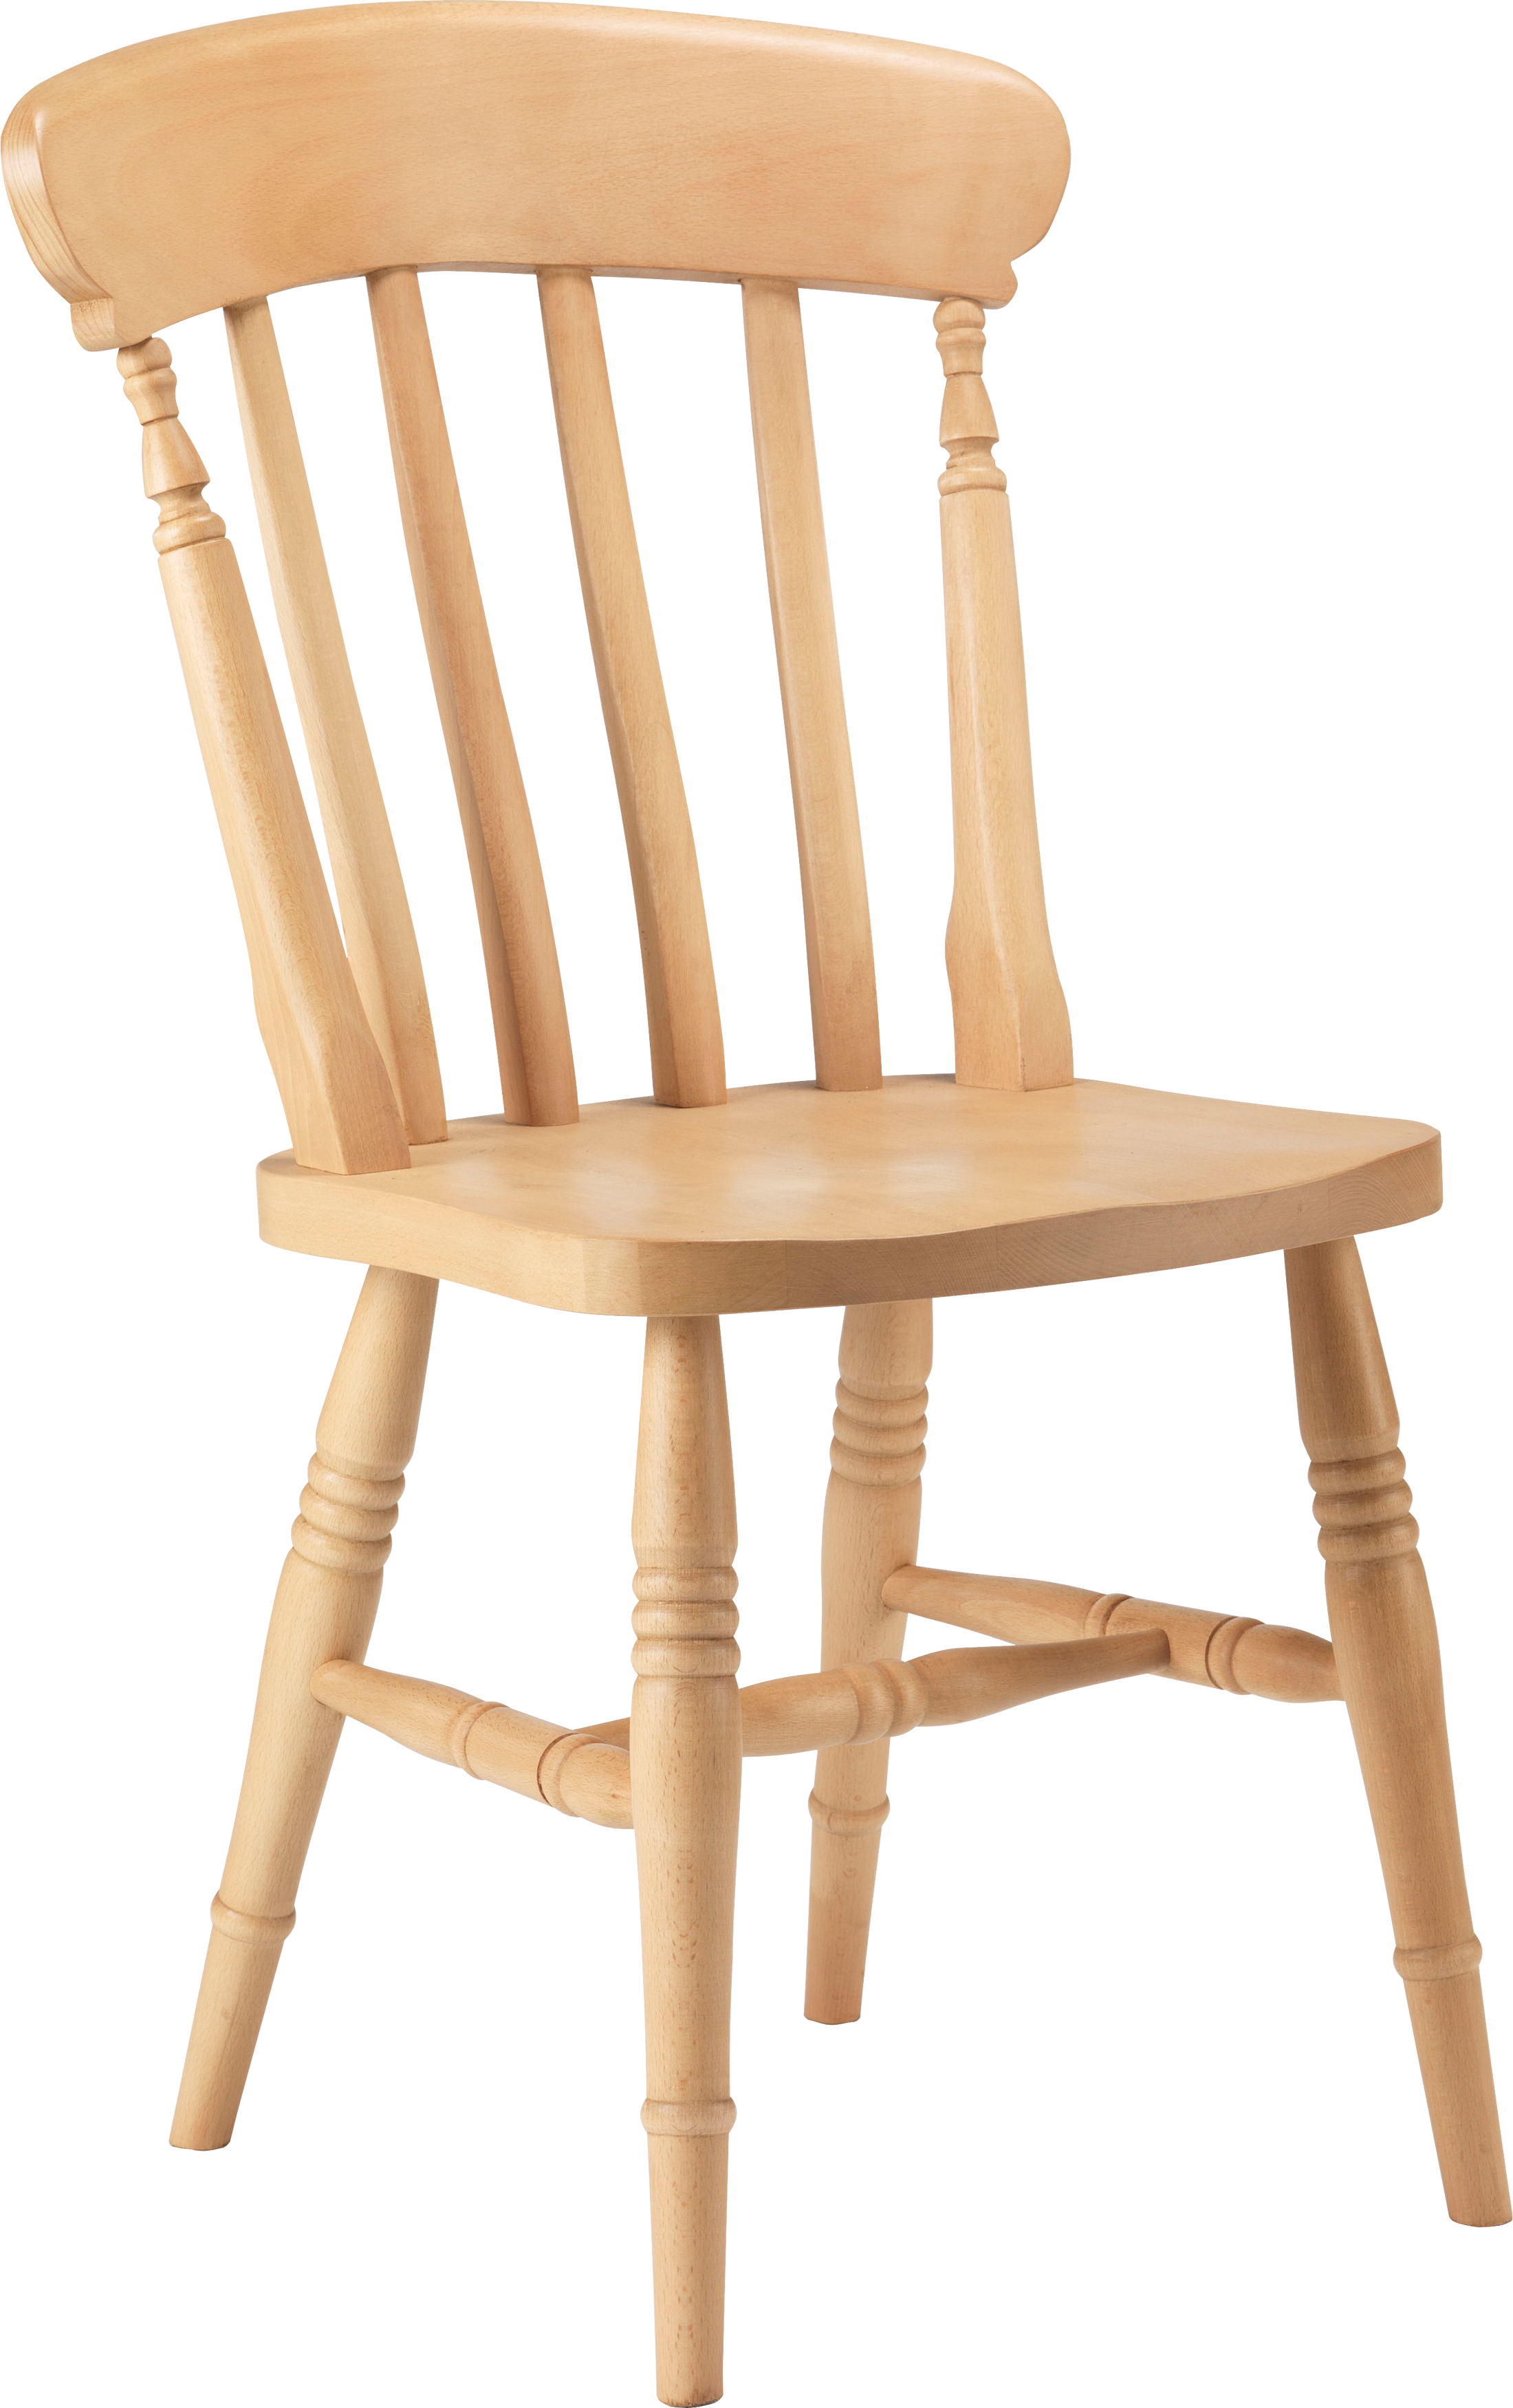 Chair Free Download Vector Png 40520 Free Icons And Png